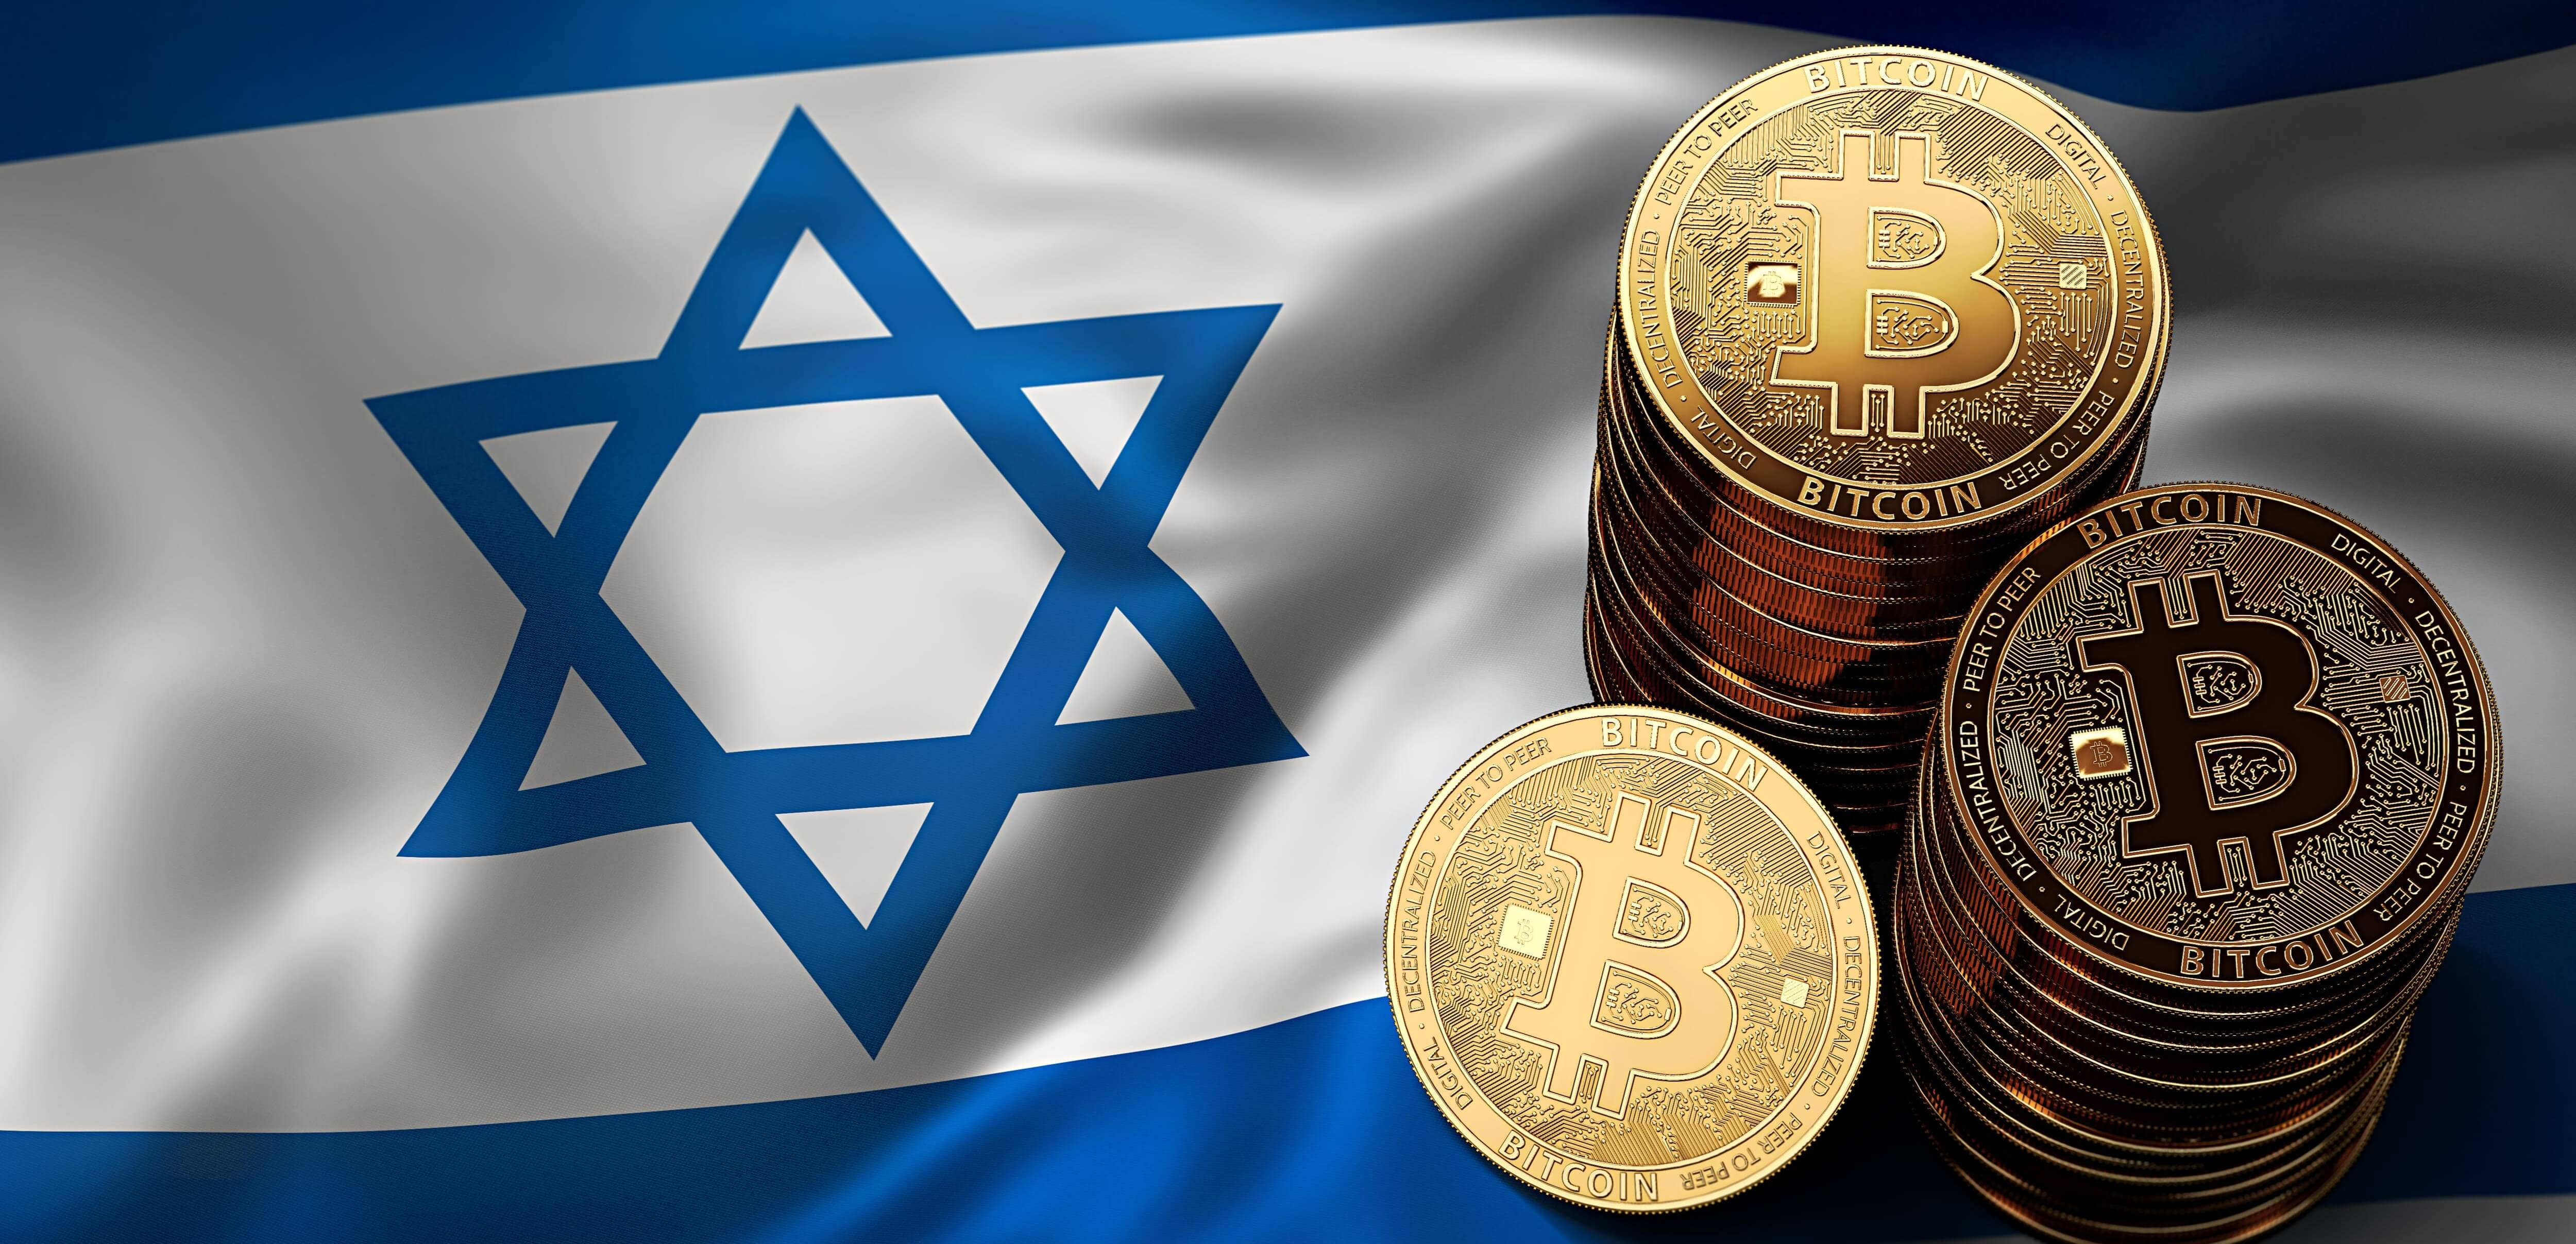 Israel will issue its own virtual currency